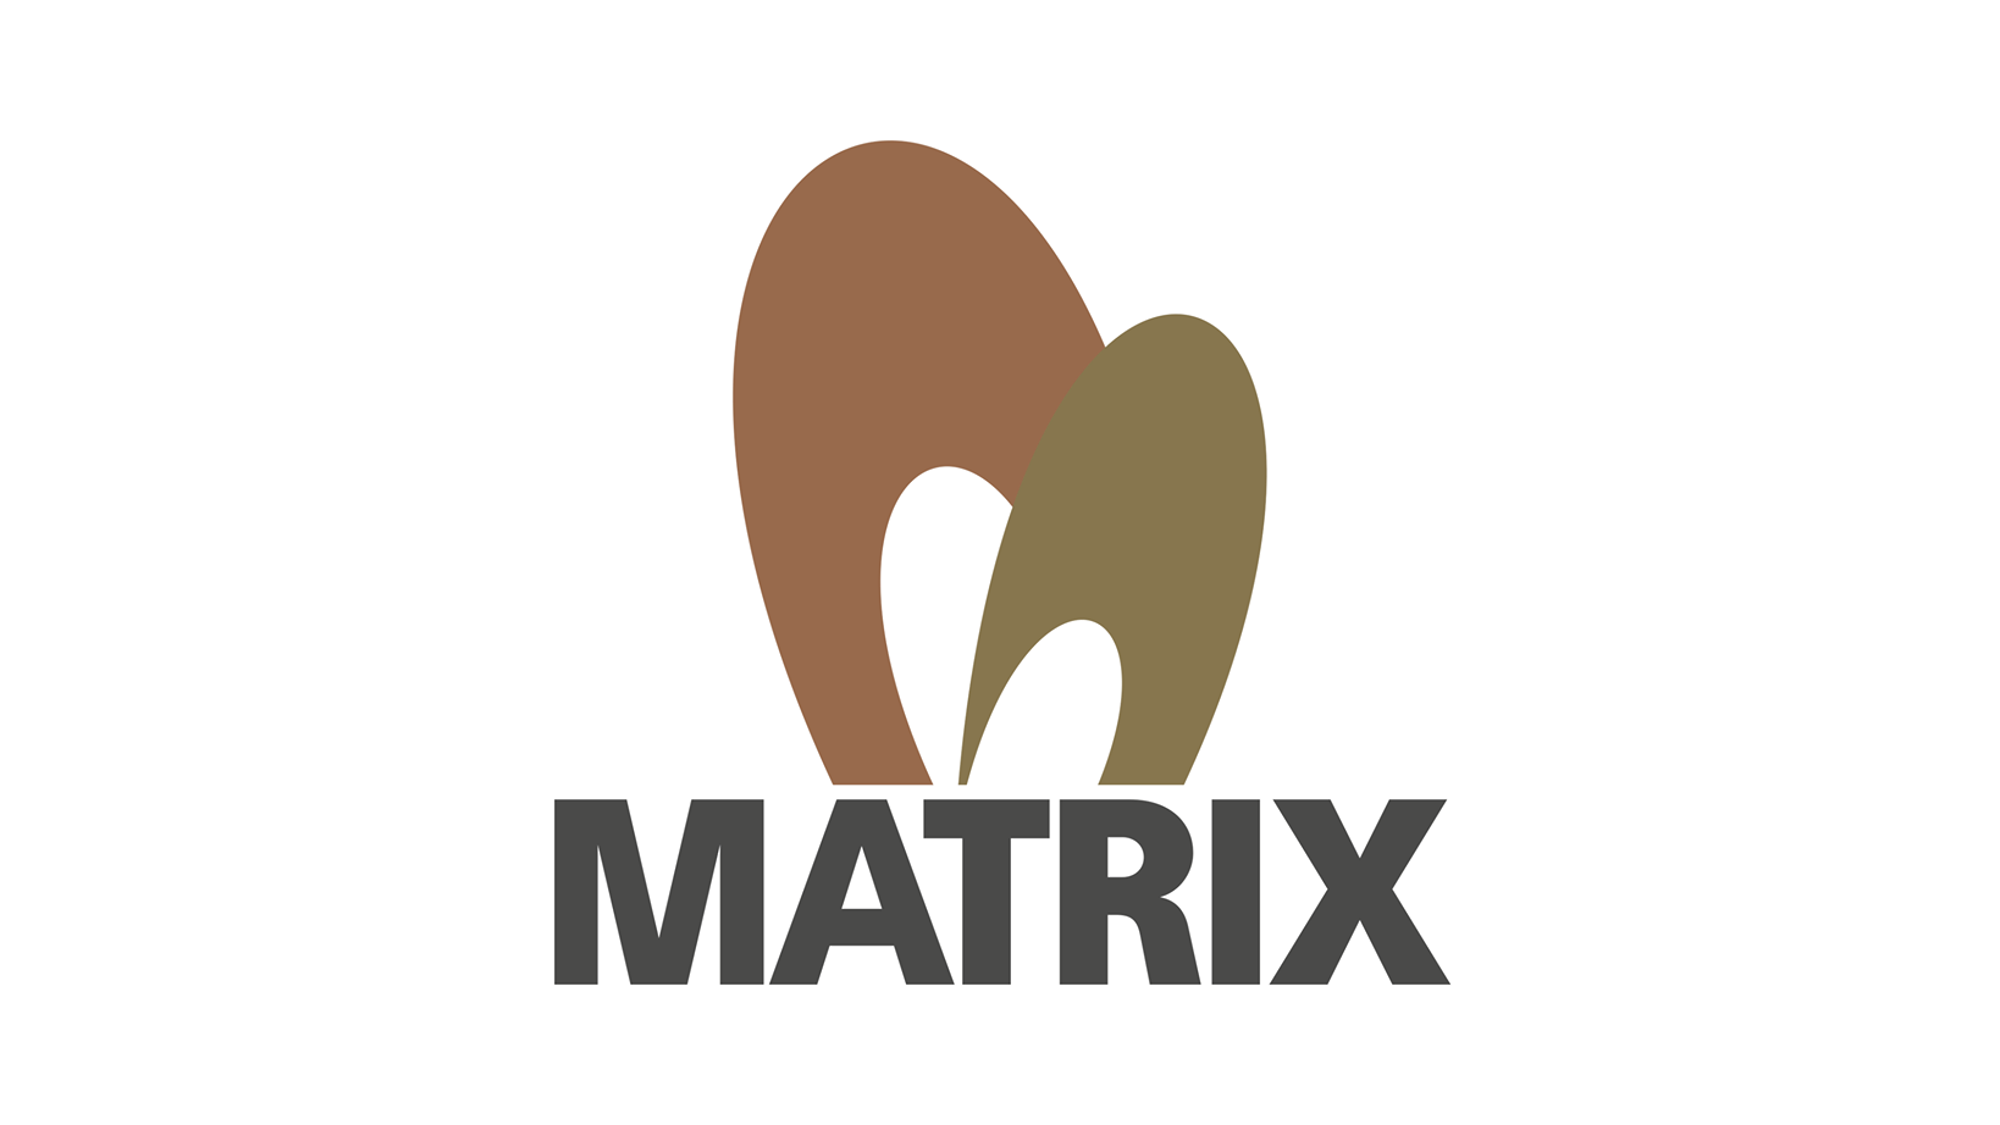 Matrix-Concepts-Holdings-Bhd.png